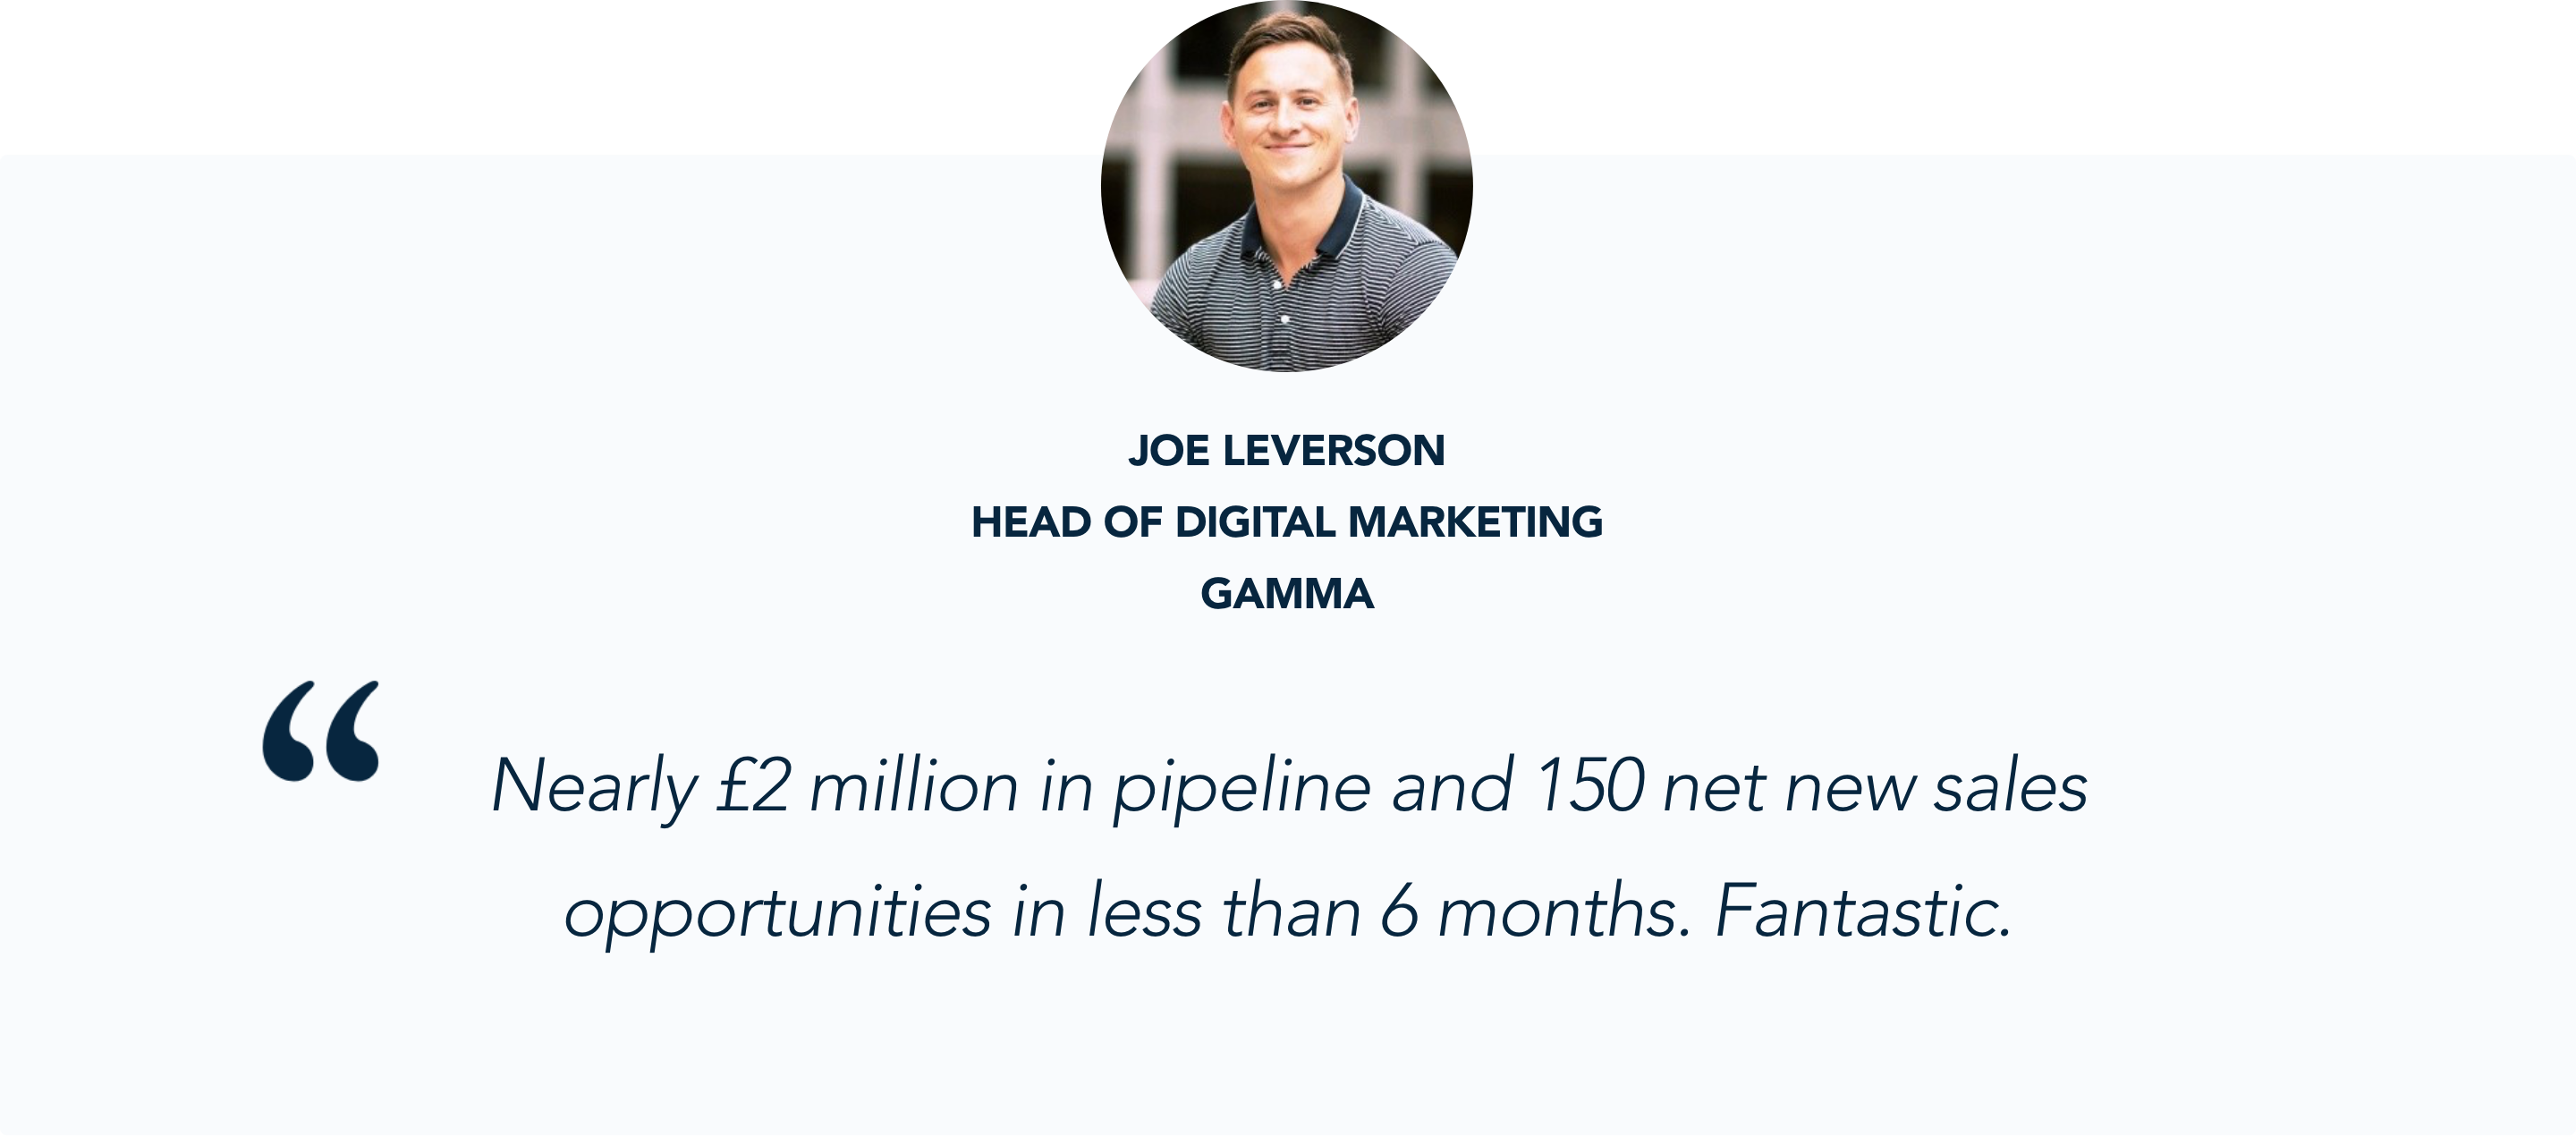 Joe Leverson, Head of Digital Marketing at Gamma, shares the sales impact Conversational Marketing has had on their business